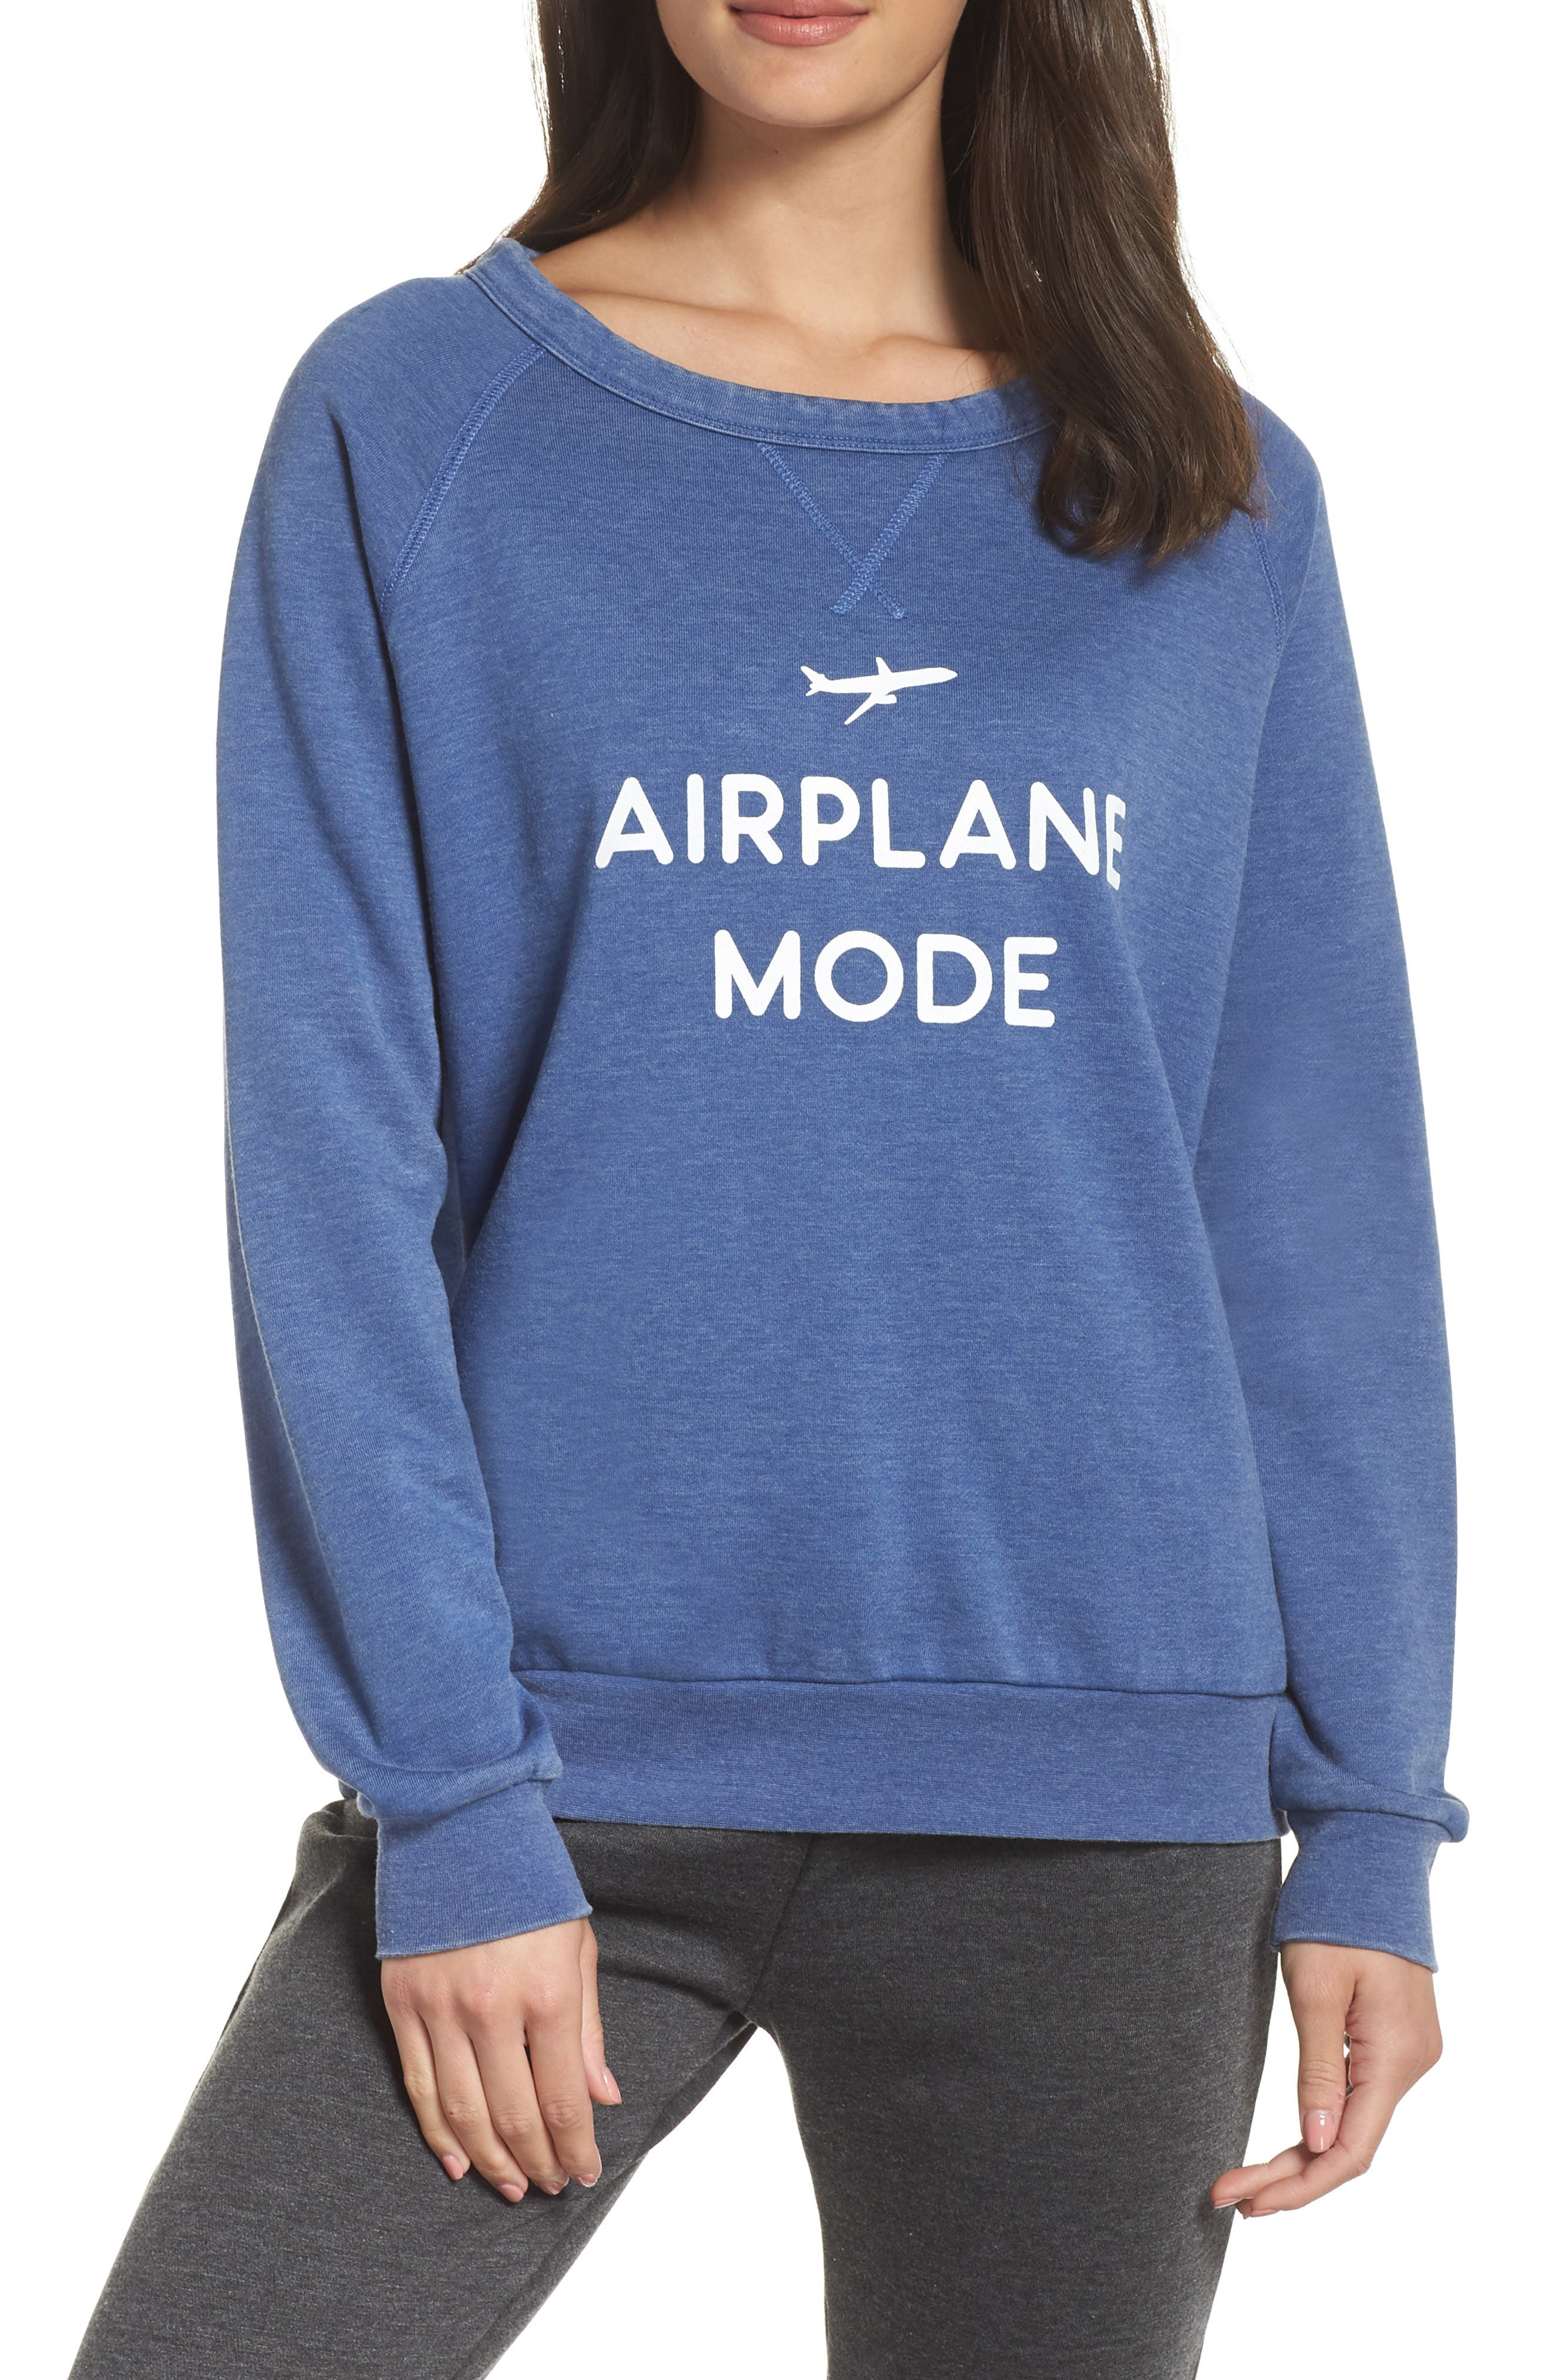 THE LAUNDRY ROOM Airplane Mode Sweatshirt in Blue